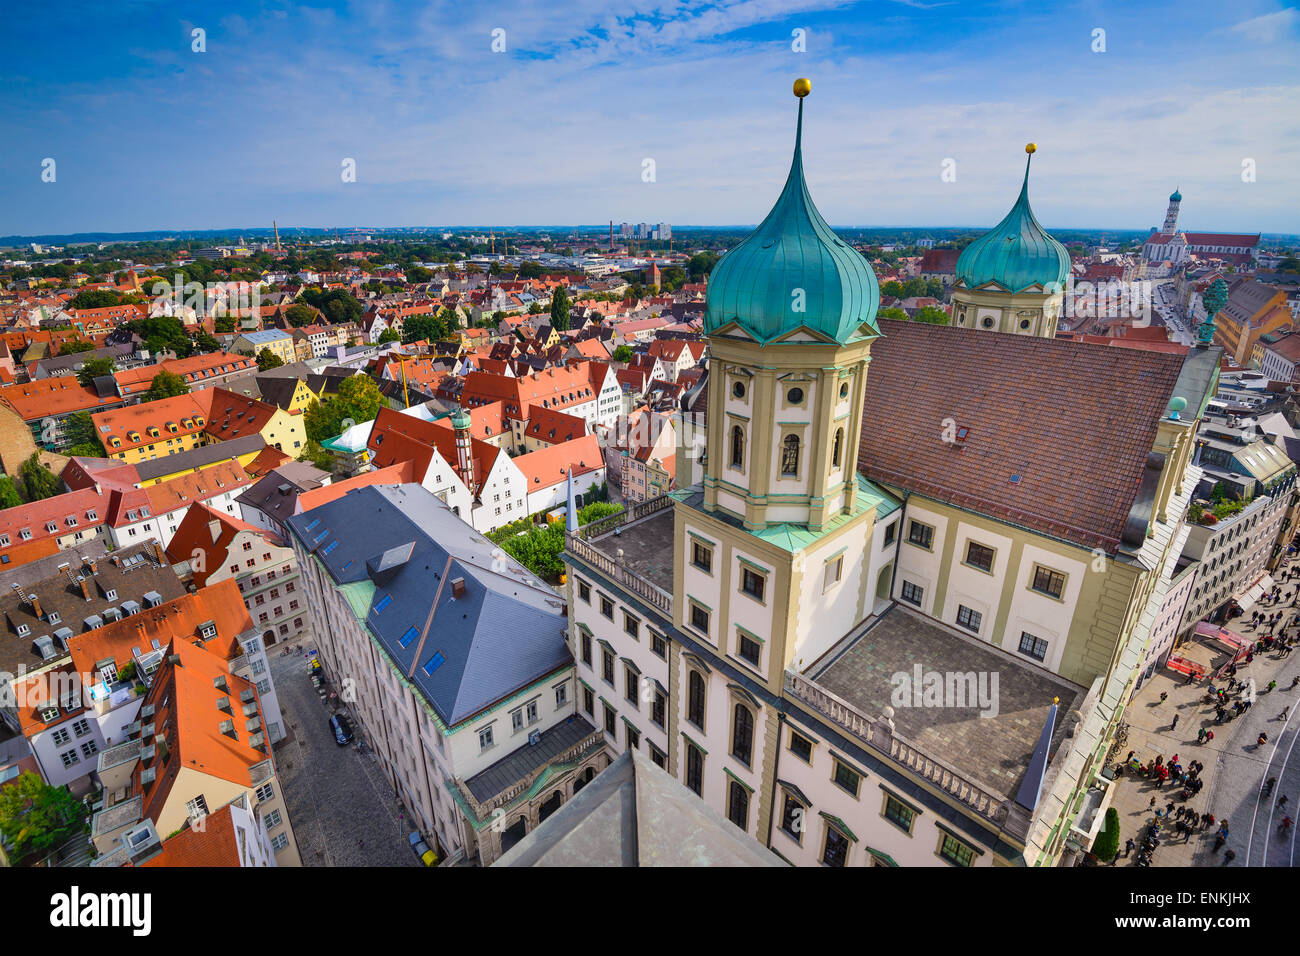 Augsburg, Germany old town cityscape. - Stock Image